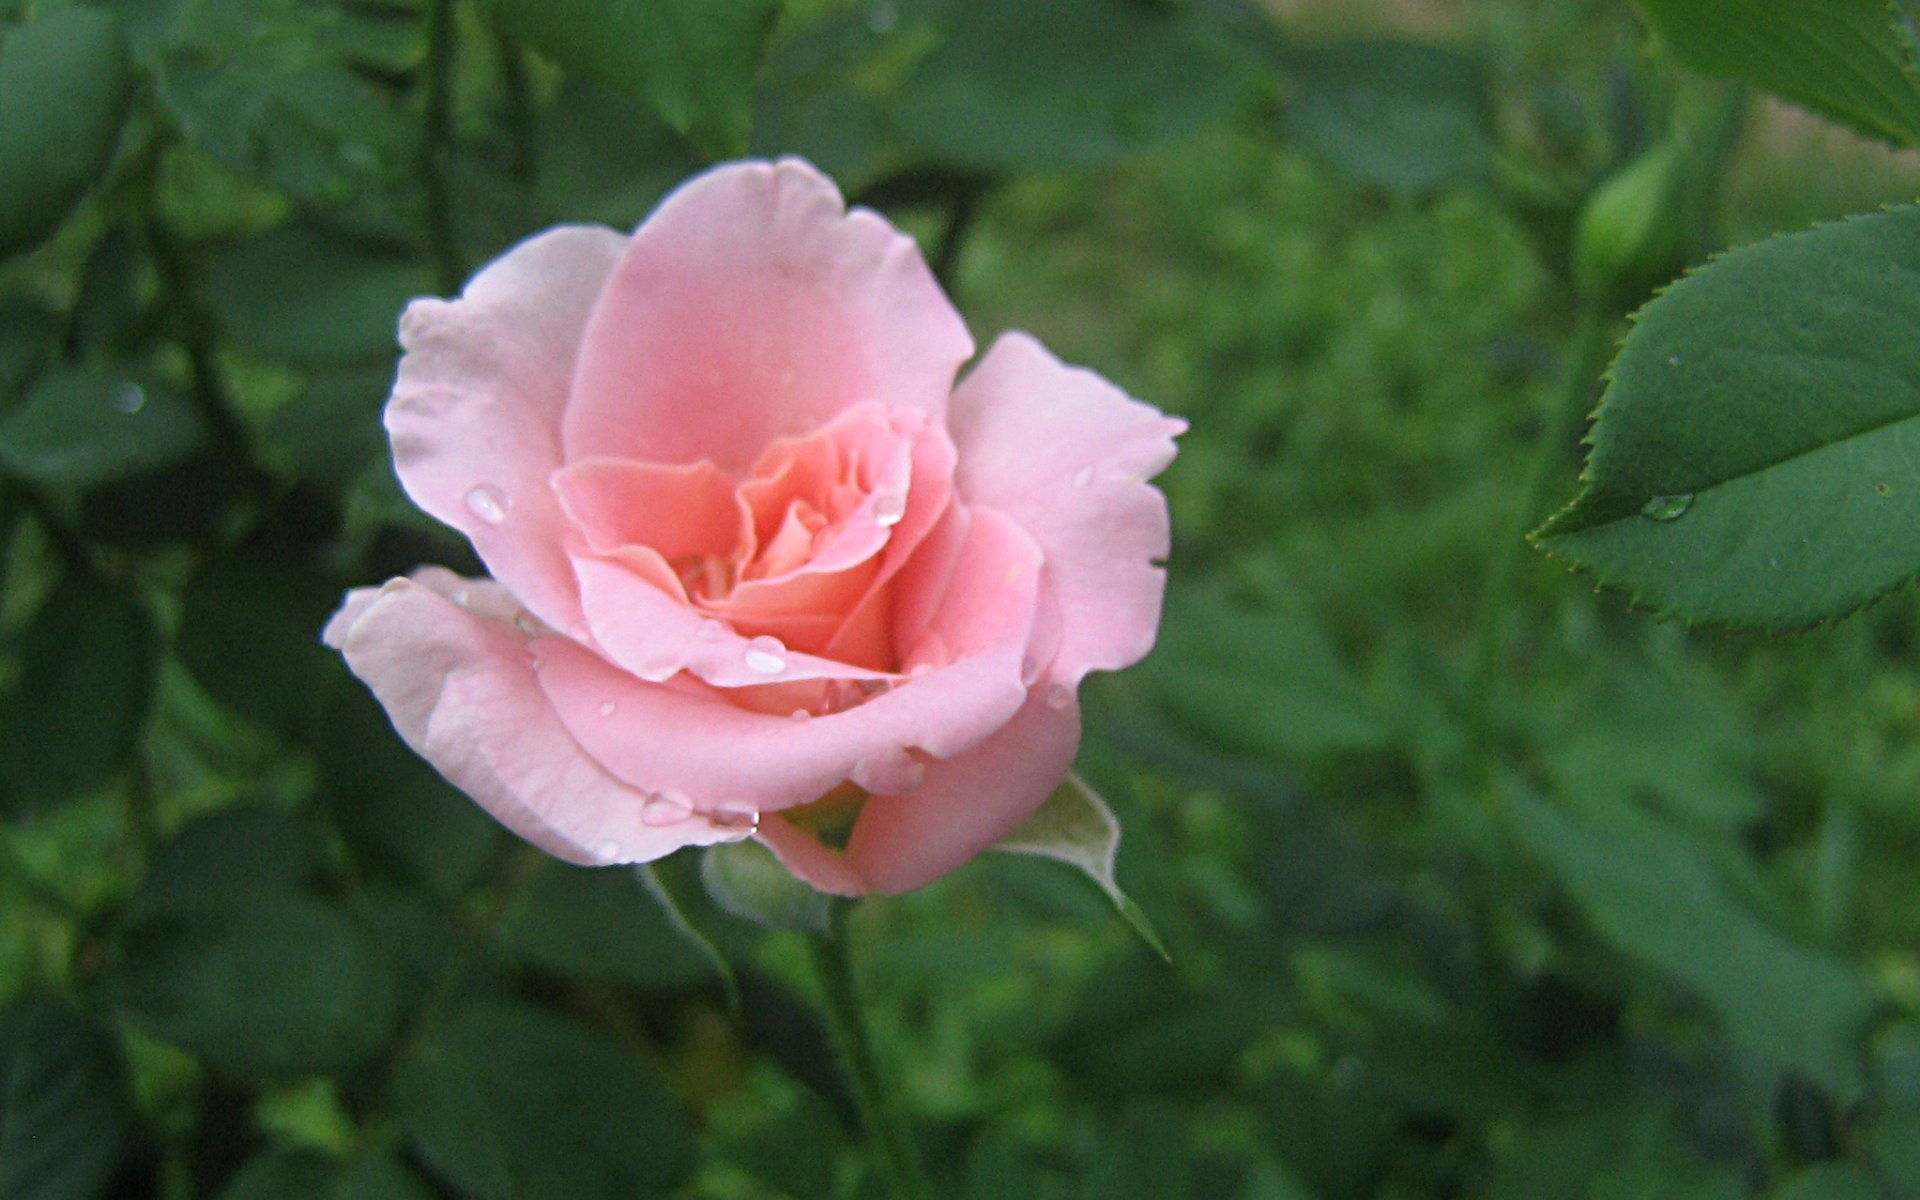 wallpapers widescreen pink roses - photo #21